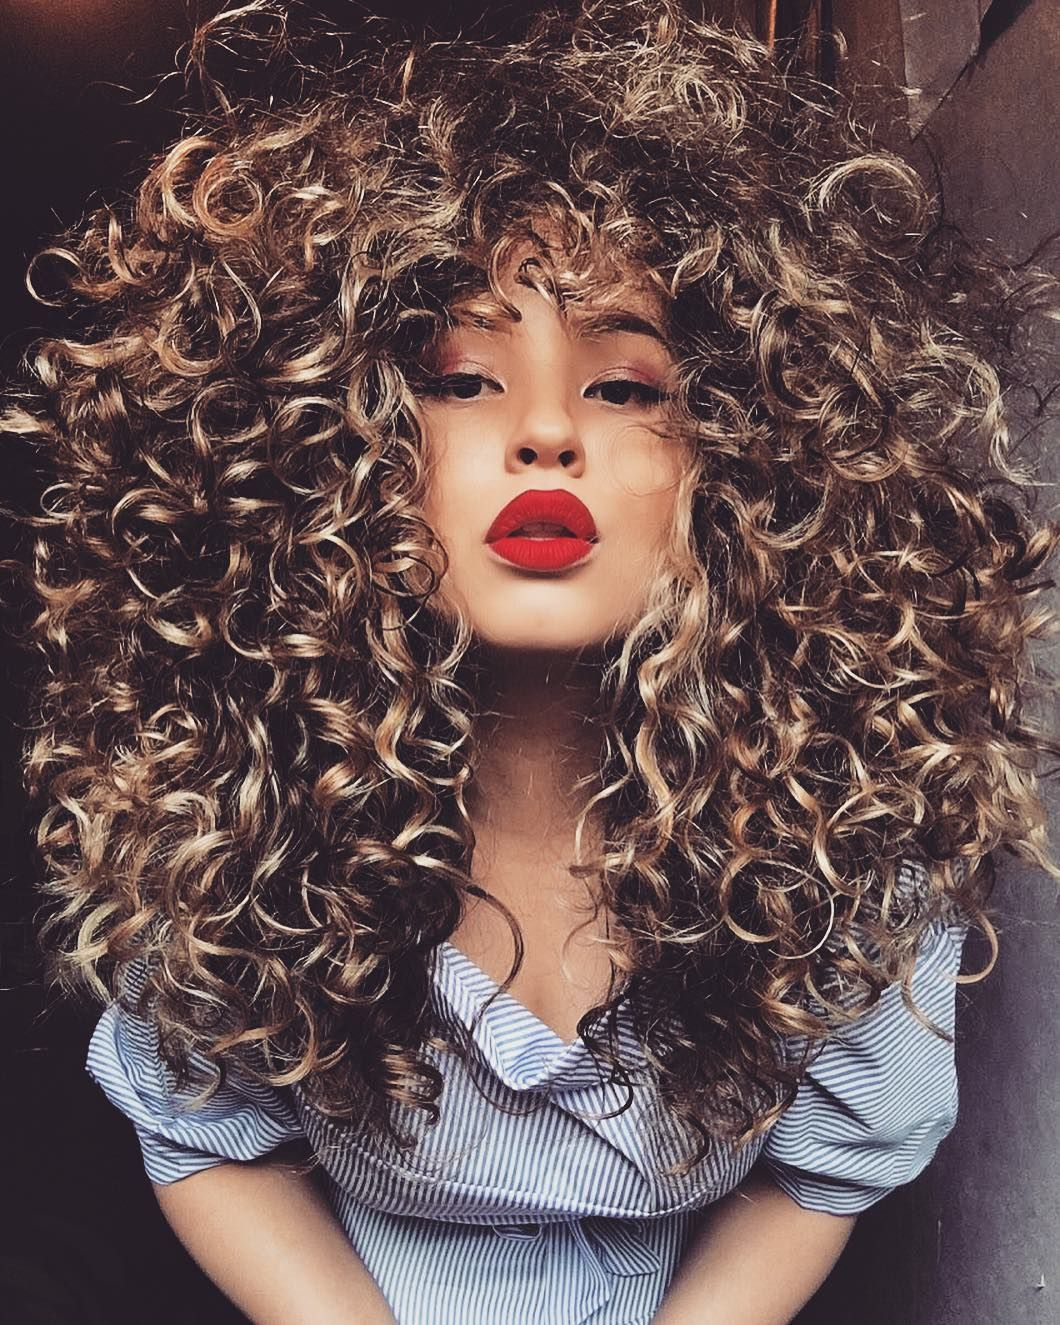 Say Goodbye To 2020 Forever With These Epic New Year S Eve Hairstyles Hair Styles Big Hair Curly Hair Styles